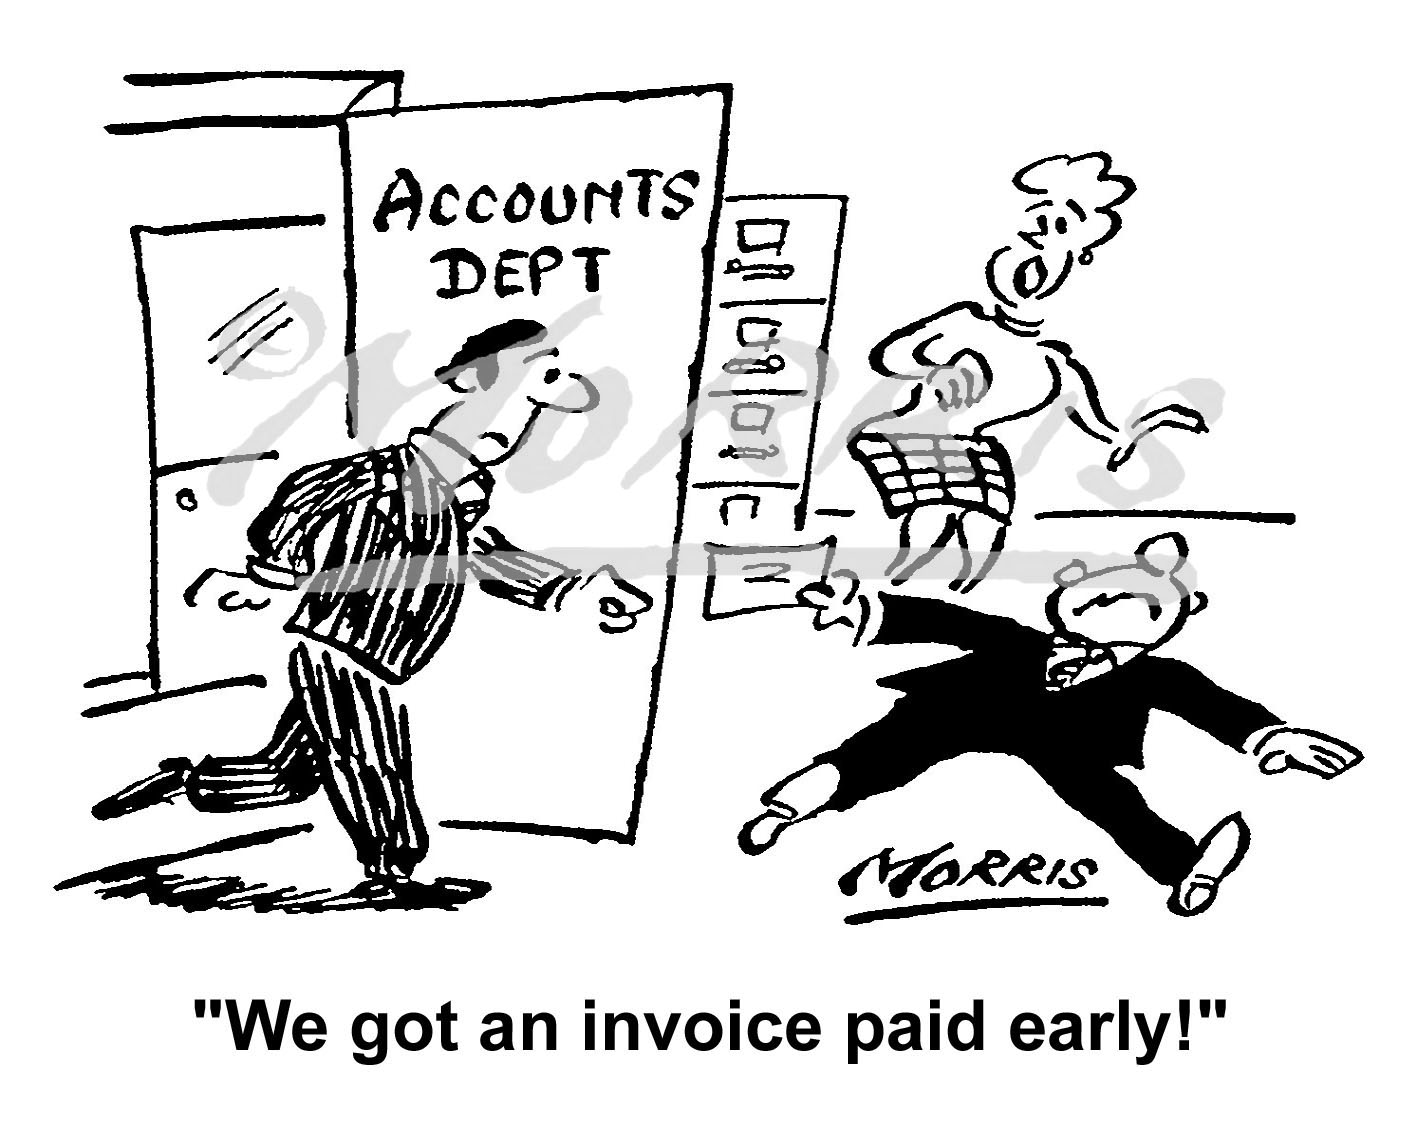 Company Accounts invoice cartoon – Ref: 5084bw